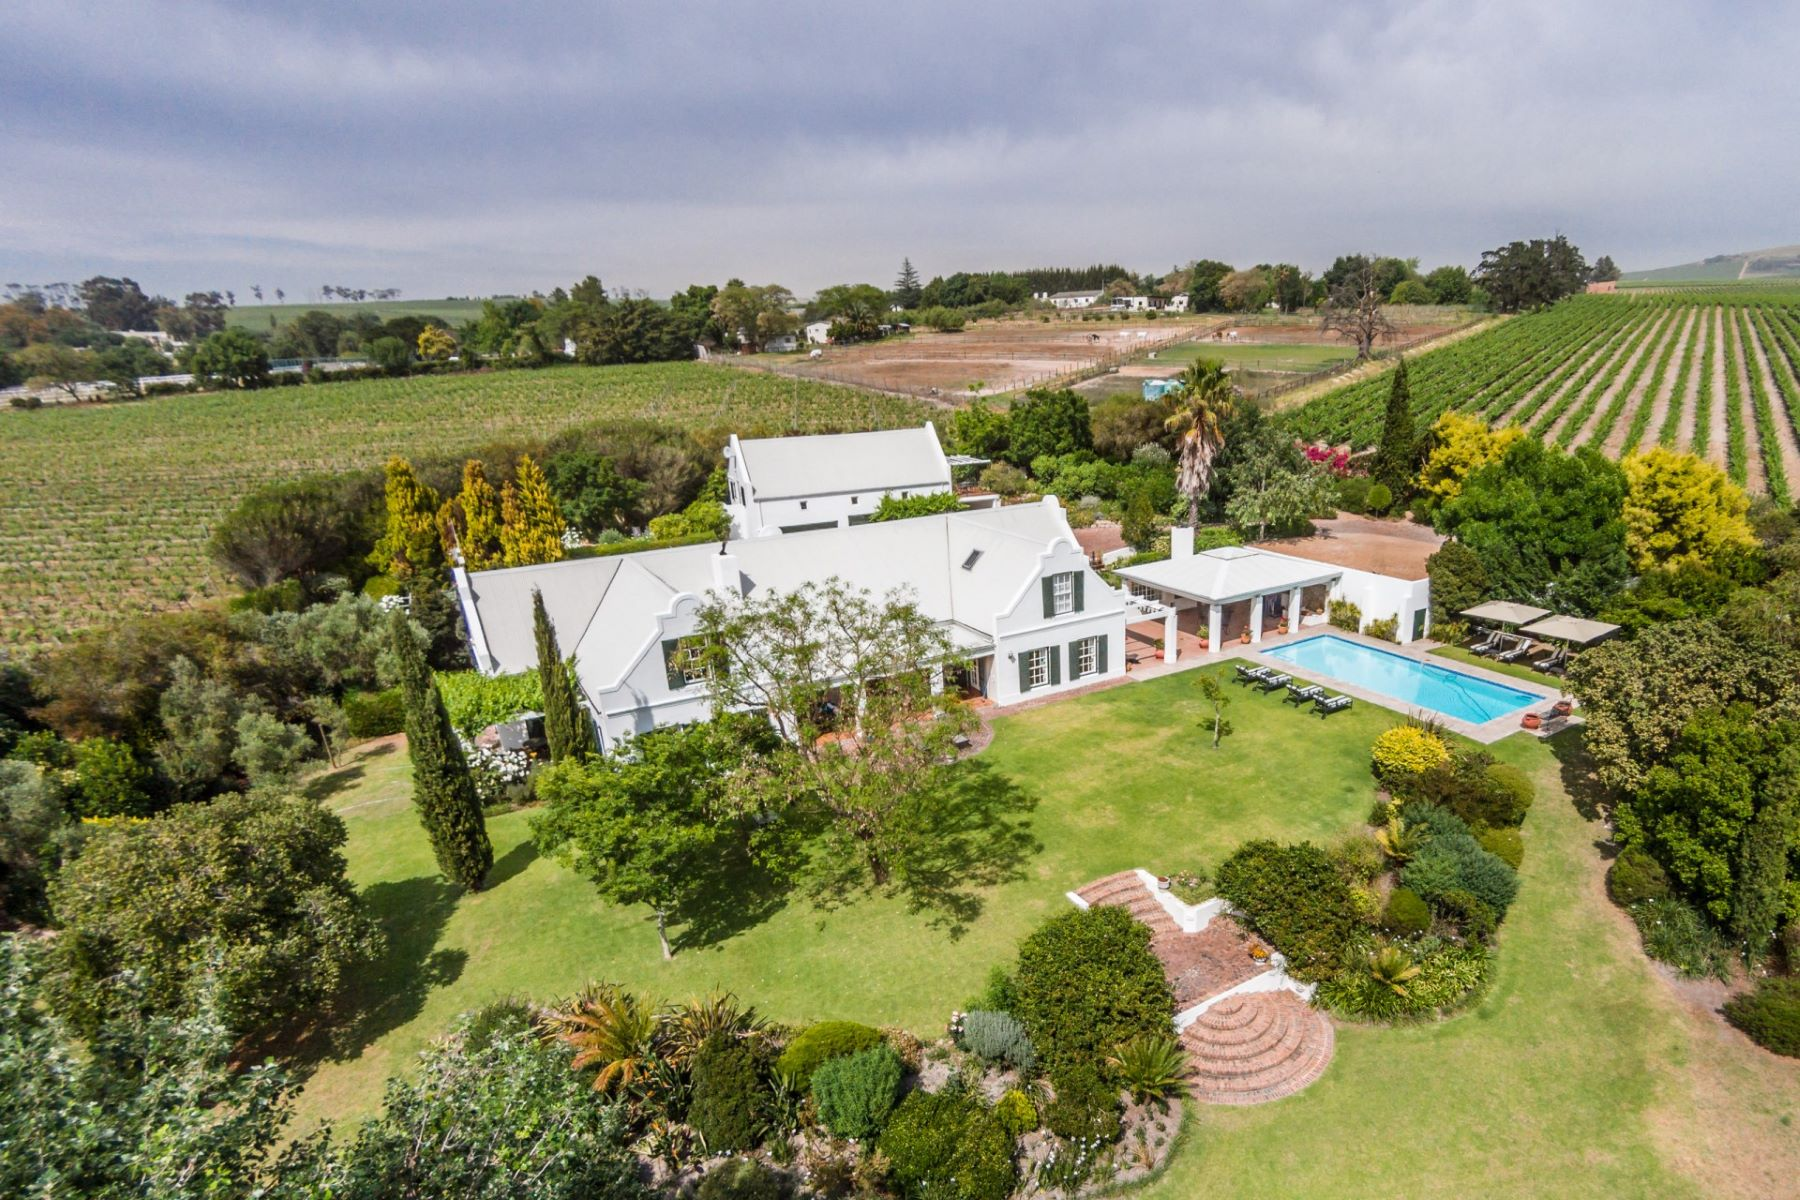 Farm / Ranch / Plantation for Sale at Stellenbosch Stellenbosch, Western Cape 7600 South Africa